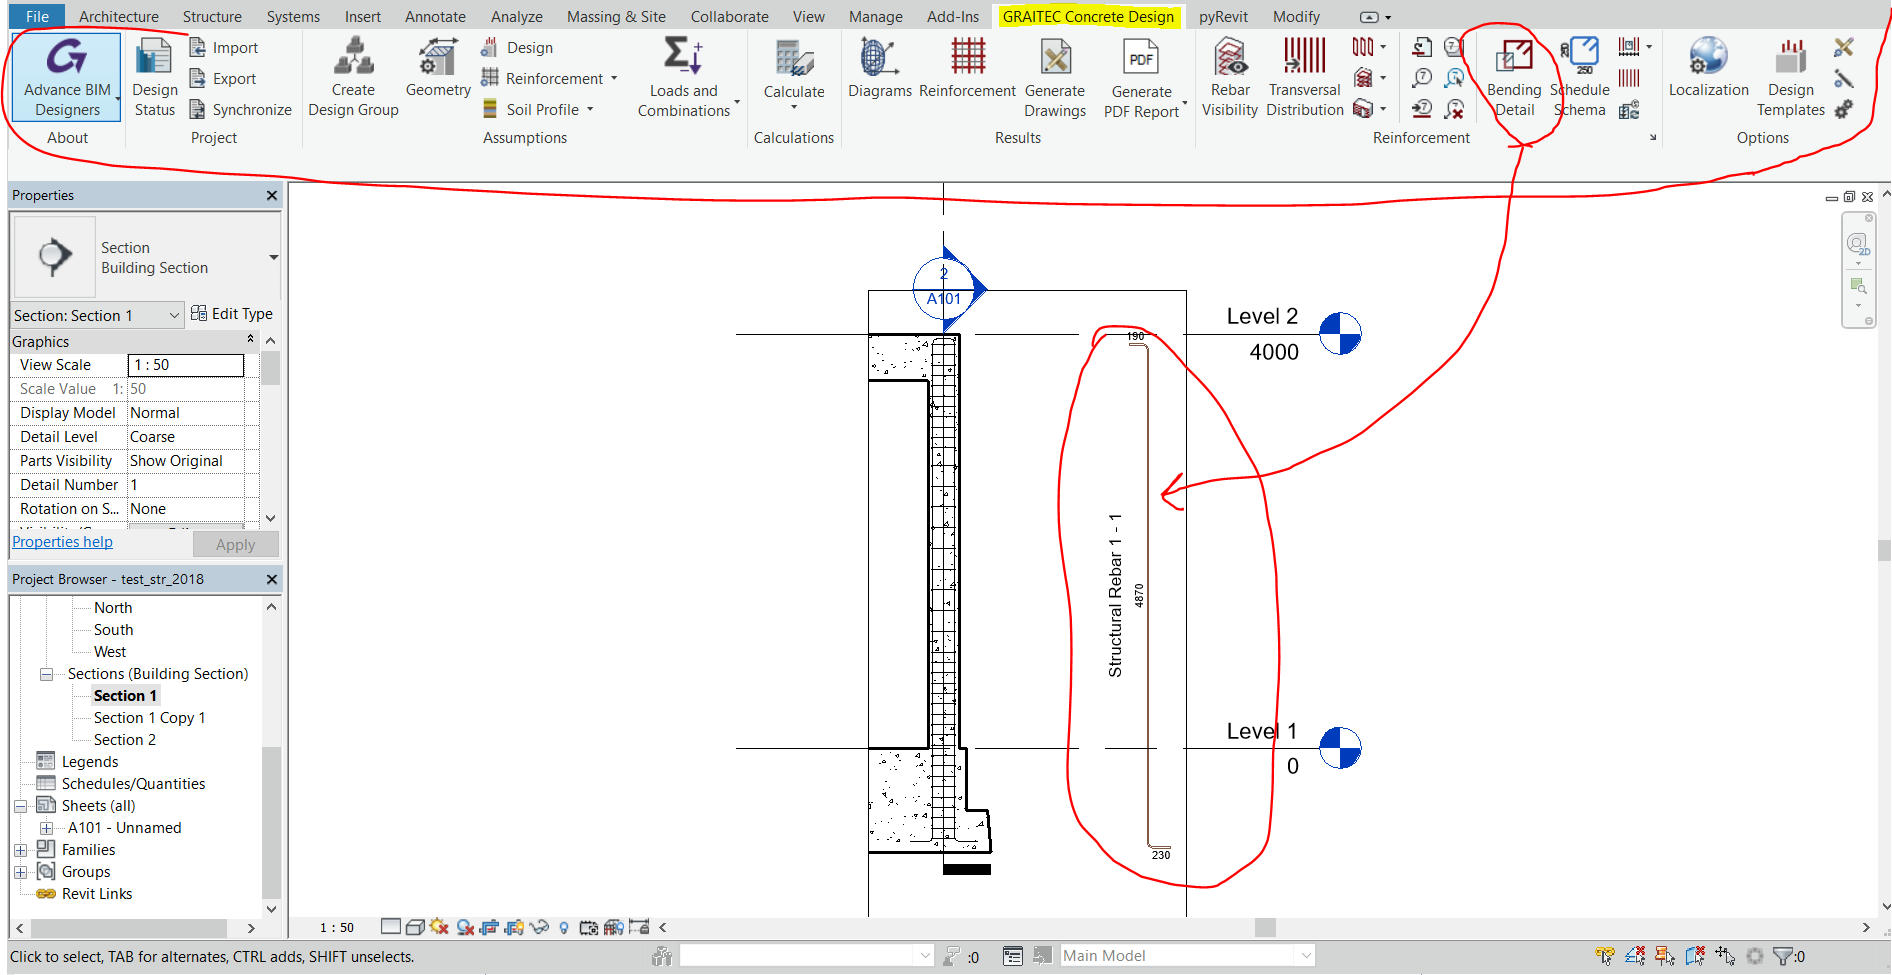 DLL files reverse engineer, Plugin for Revit - One-Time Work - R0 CREW